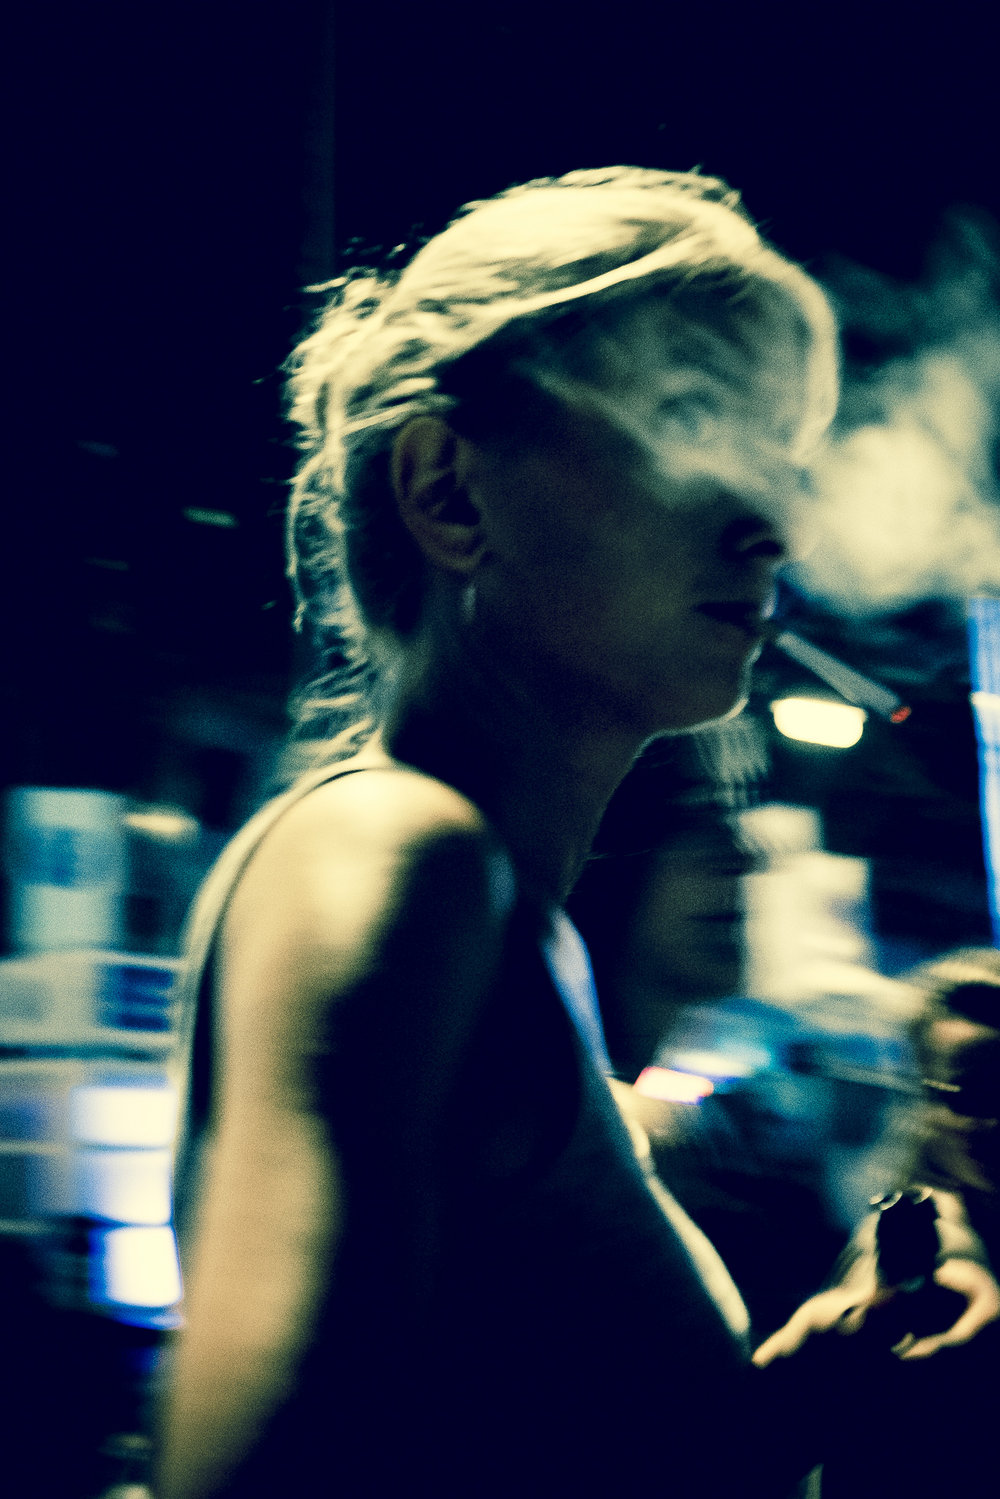 Smoking Girl. Cologne 2016.